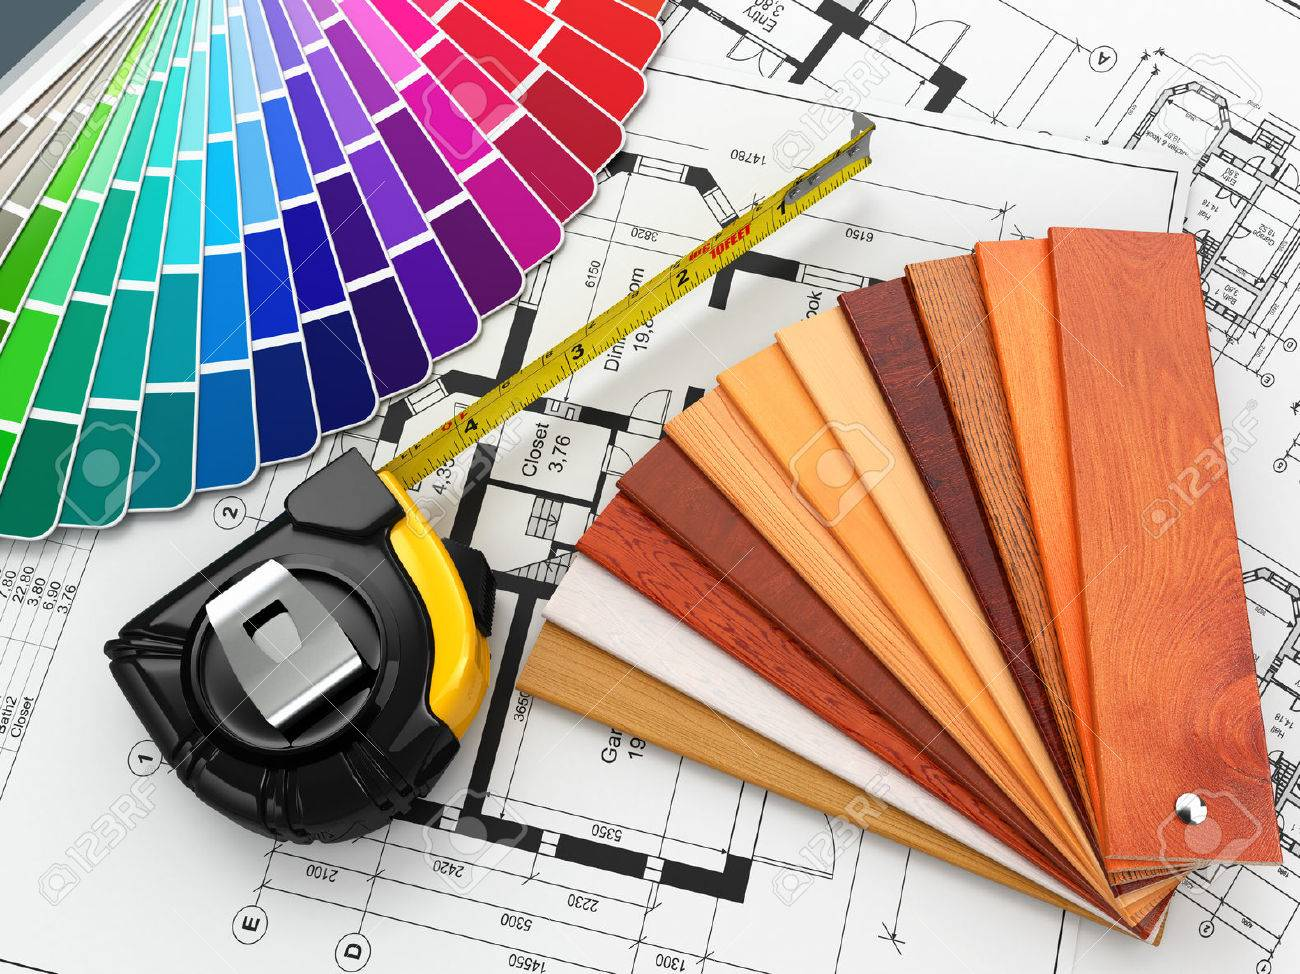 interior design. architectural materials, measuring tools and